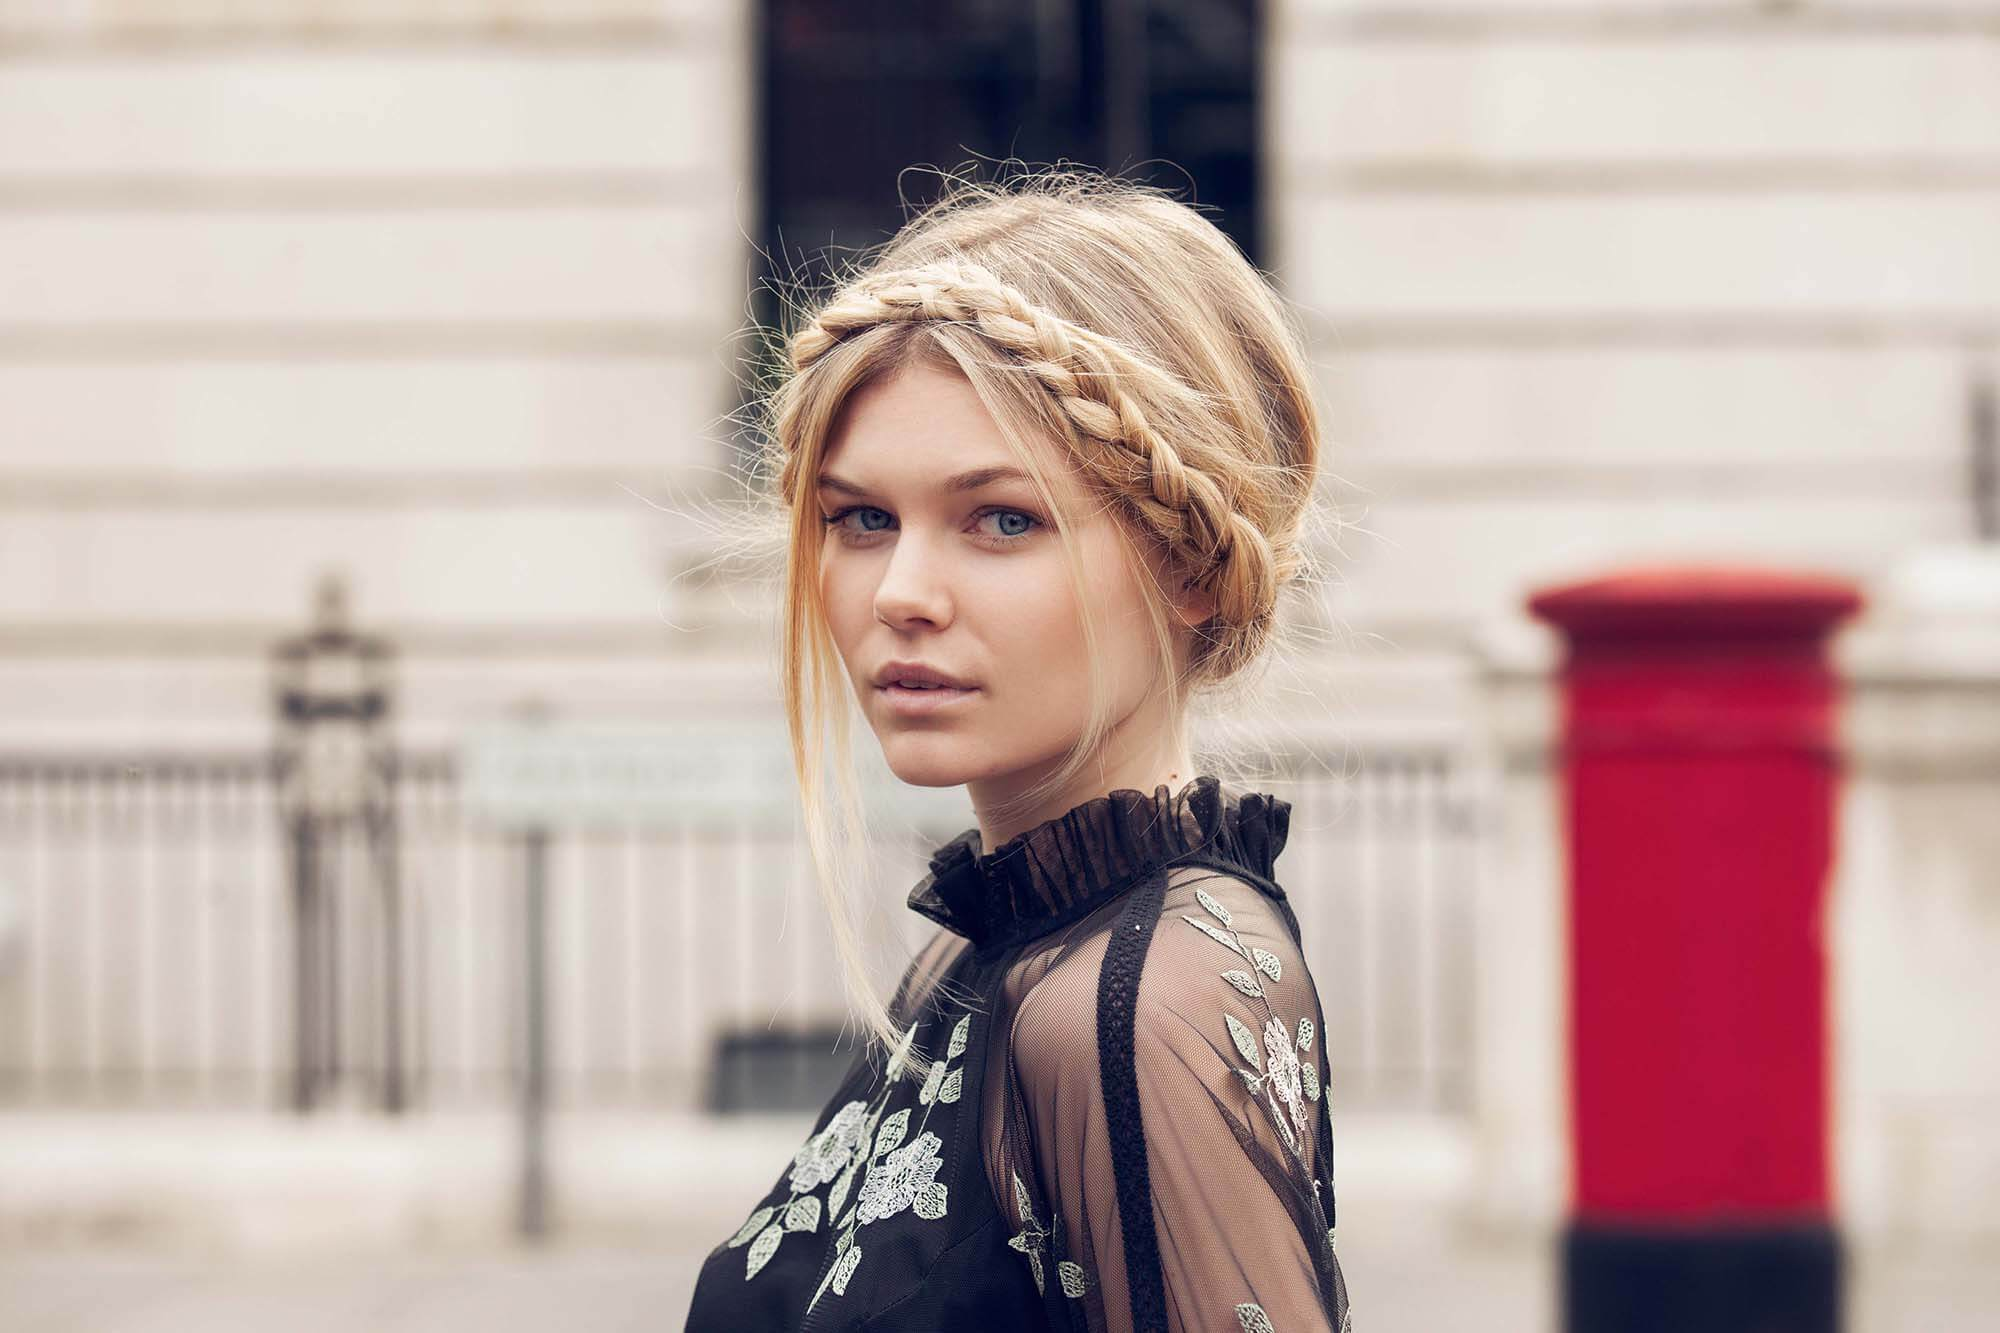 blonde model with milkmaid braid and a black lace top